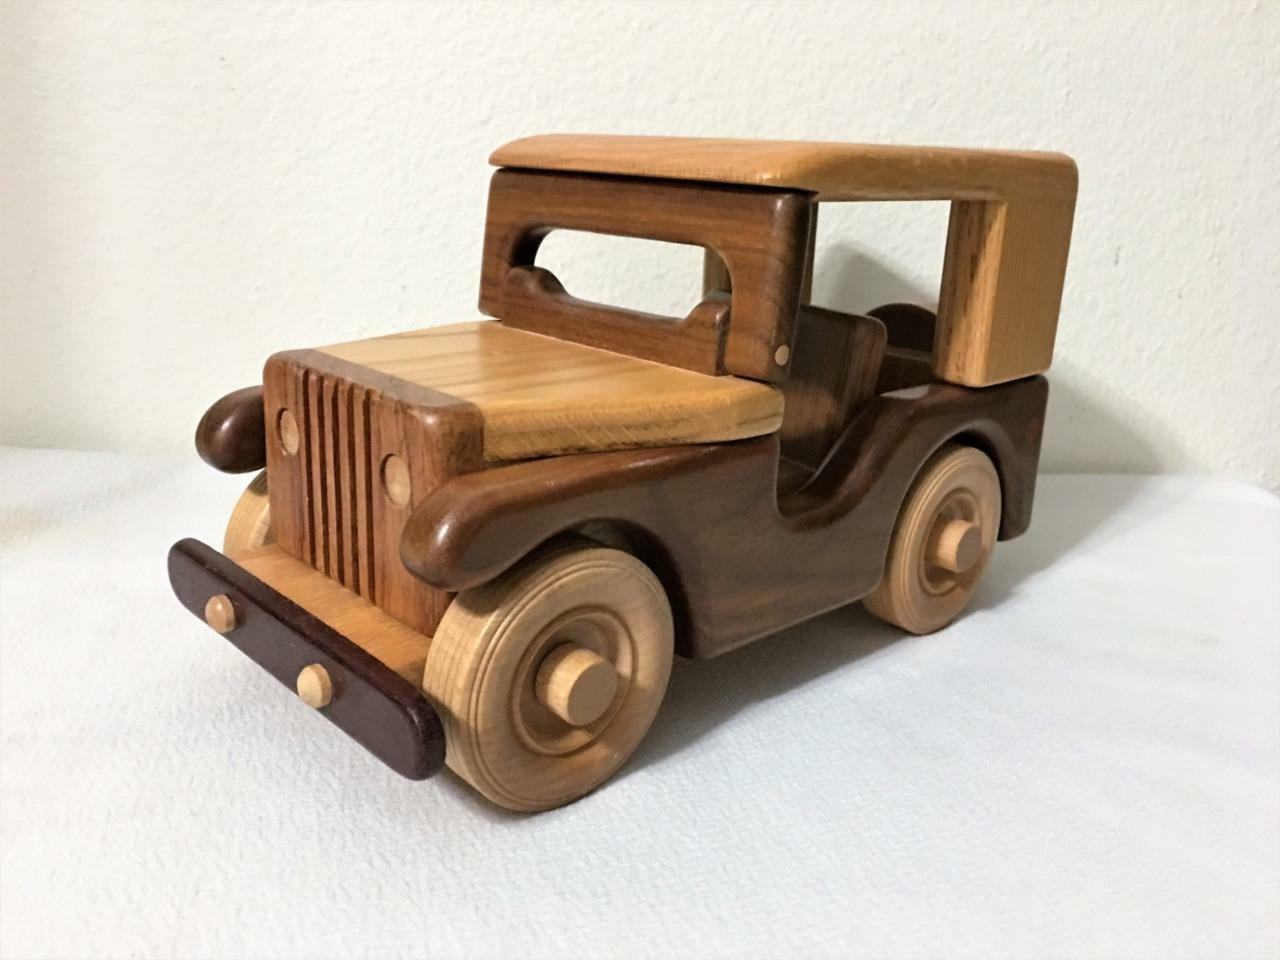 QUALITY HAND CRAFTED ALL WOOD TOY JEEP NO SCREWS OR NAILS 11 X 6  BY J. CORBITT